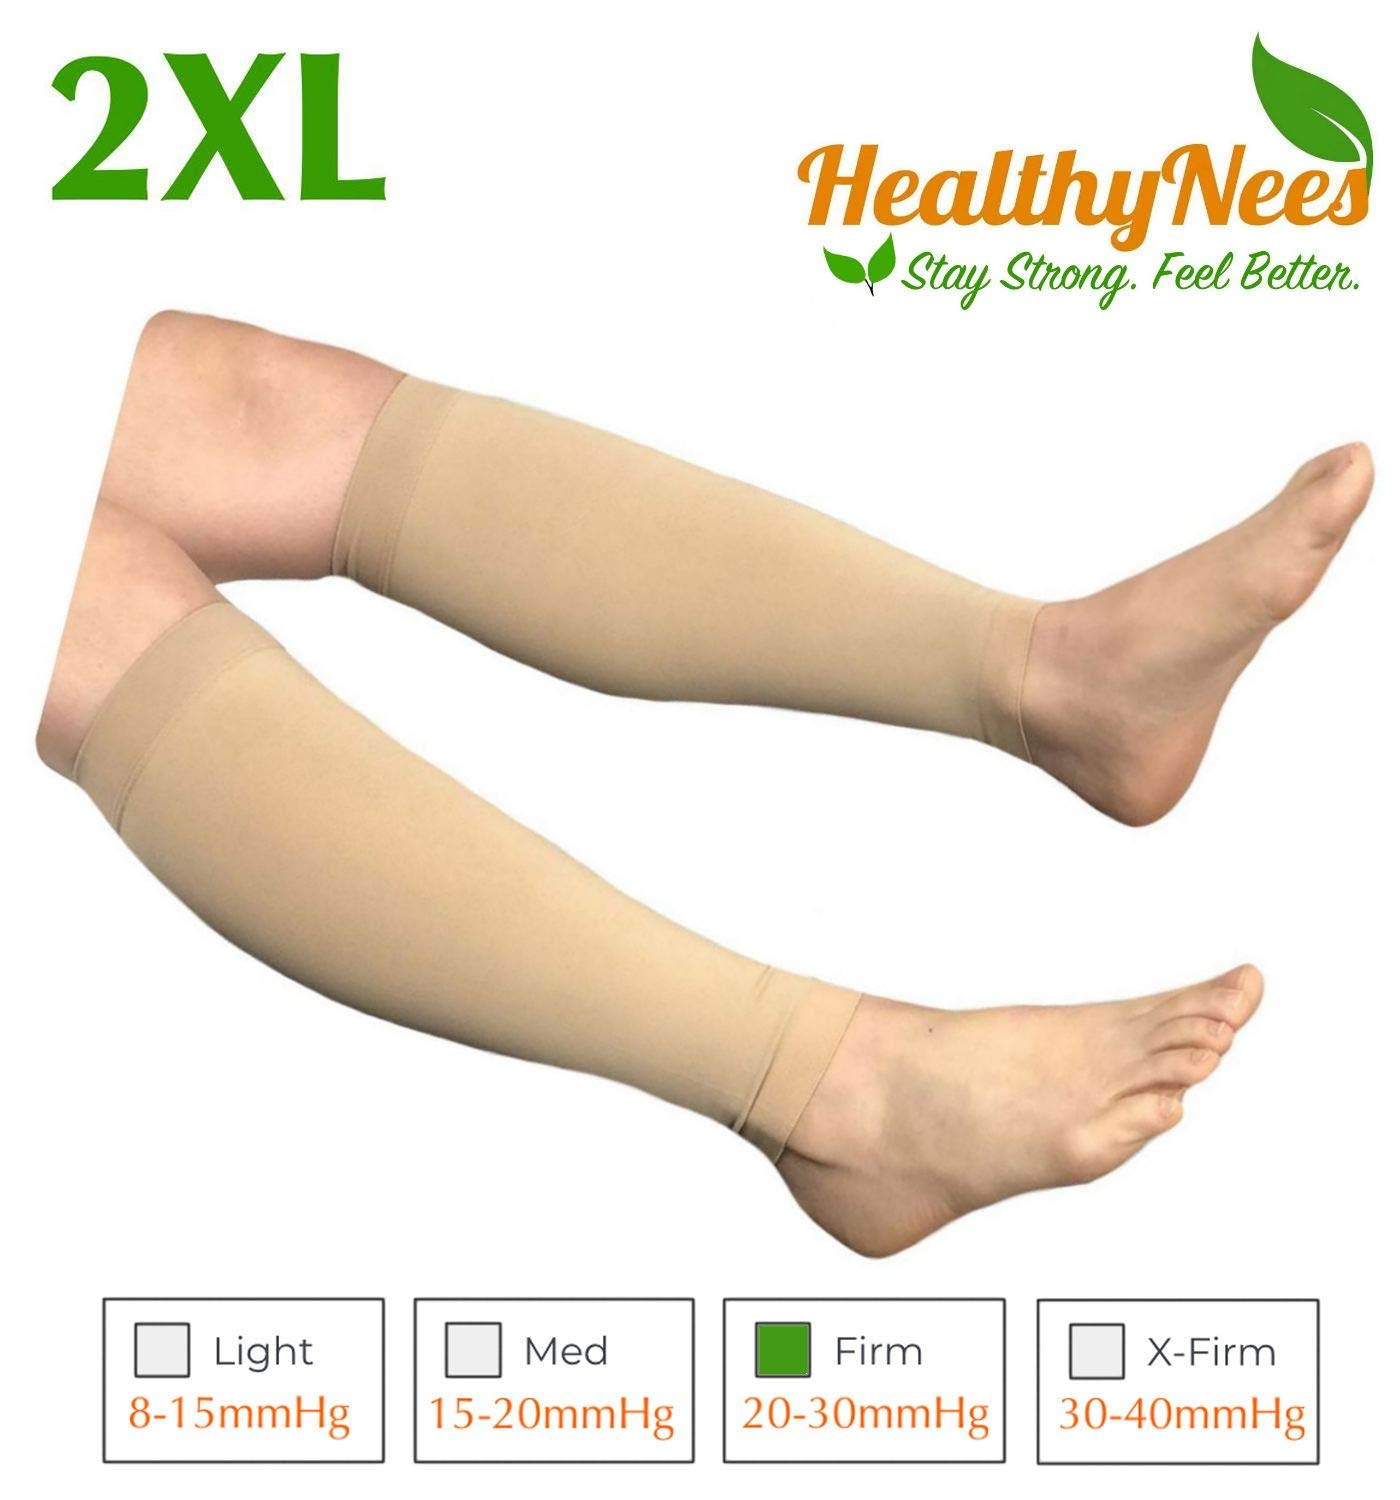 HealthyNees Shin Calf Sleeve 20-30 mmHg Medical Compression Circulation Extra Wide Plus Size Big Tall Leg Thick Calves Firm Support (Beige, Mid Calf 2XL) by HealthyNees